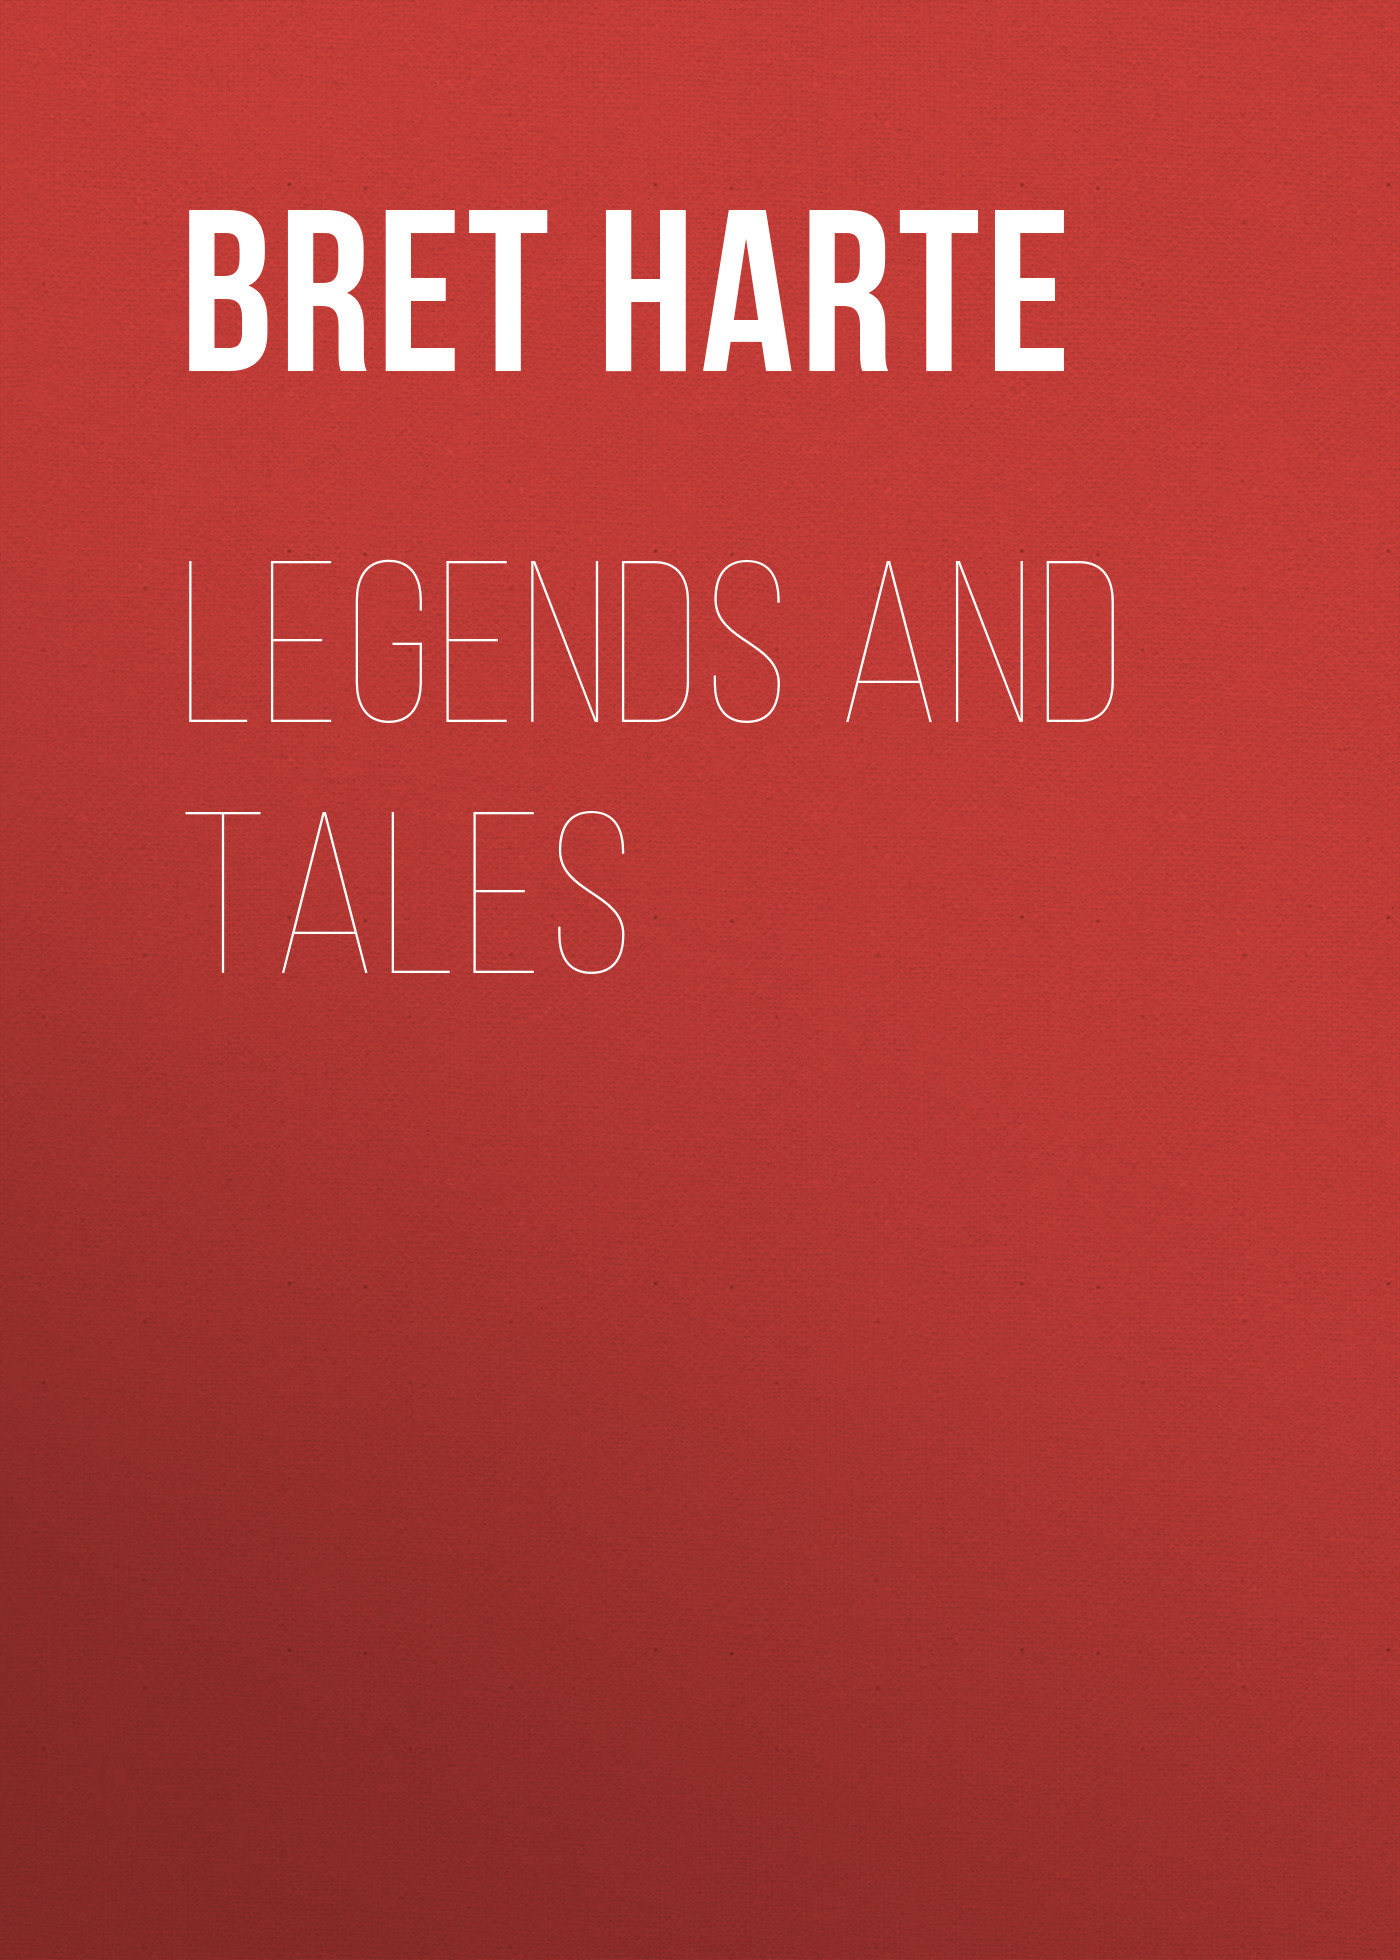 Bret Harte Legends and Tales bret harte the heritage of dedlow marsh and other tales